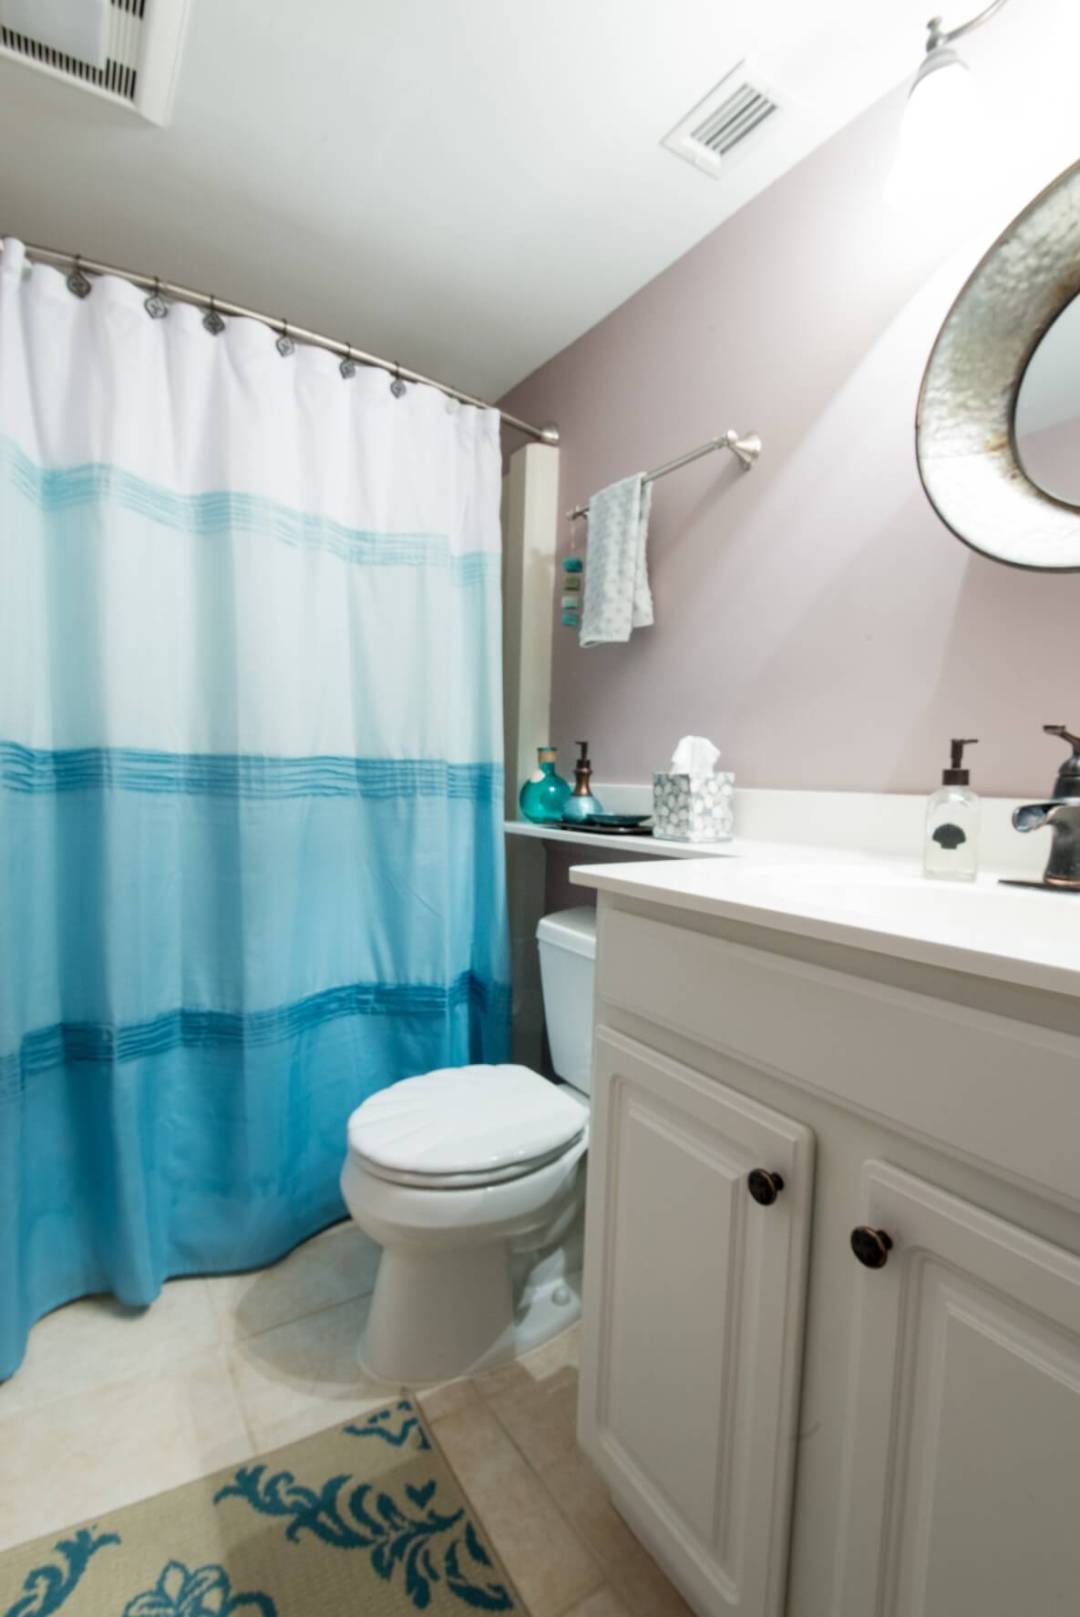 Sea Colony Condo Renovation Bethany Beach, DE Bathroom with Light Tile Floor, White Vanity Cabinet and Shower Curtain